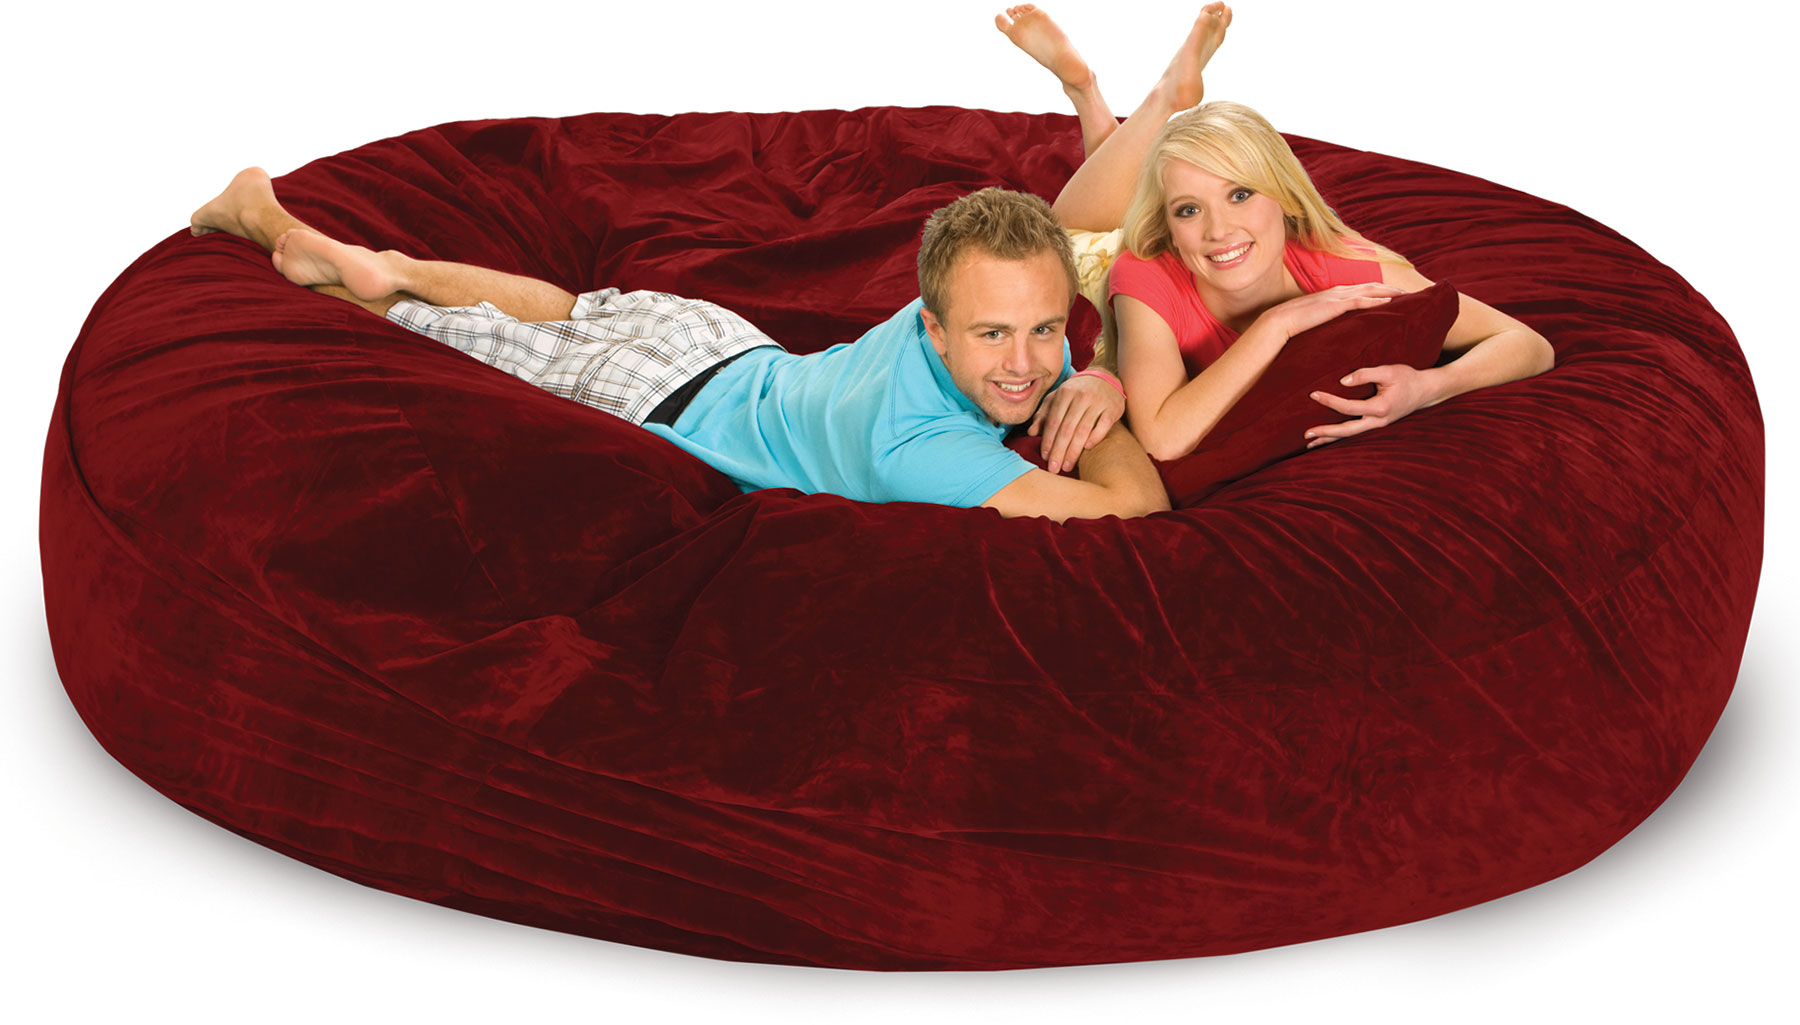 The Need Is Large: Bean Bag Chairs For Everyone!